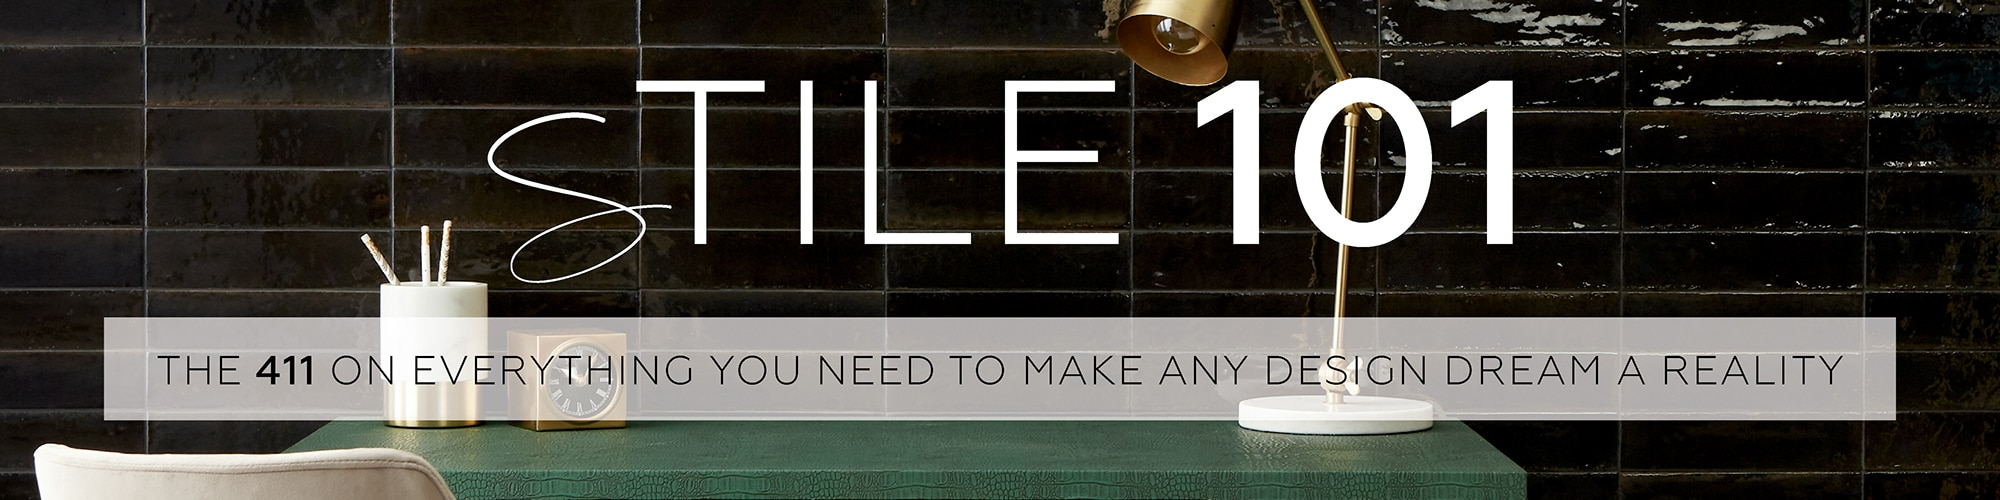 From inspiration to how-to instructions, Daltile has compiled basic information to make working from home a little easier for designers, architects, and DIYers